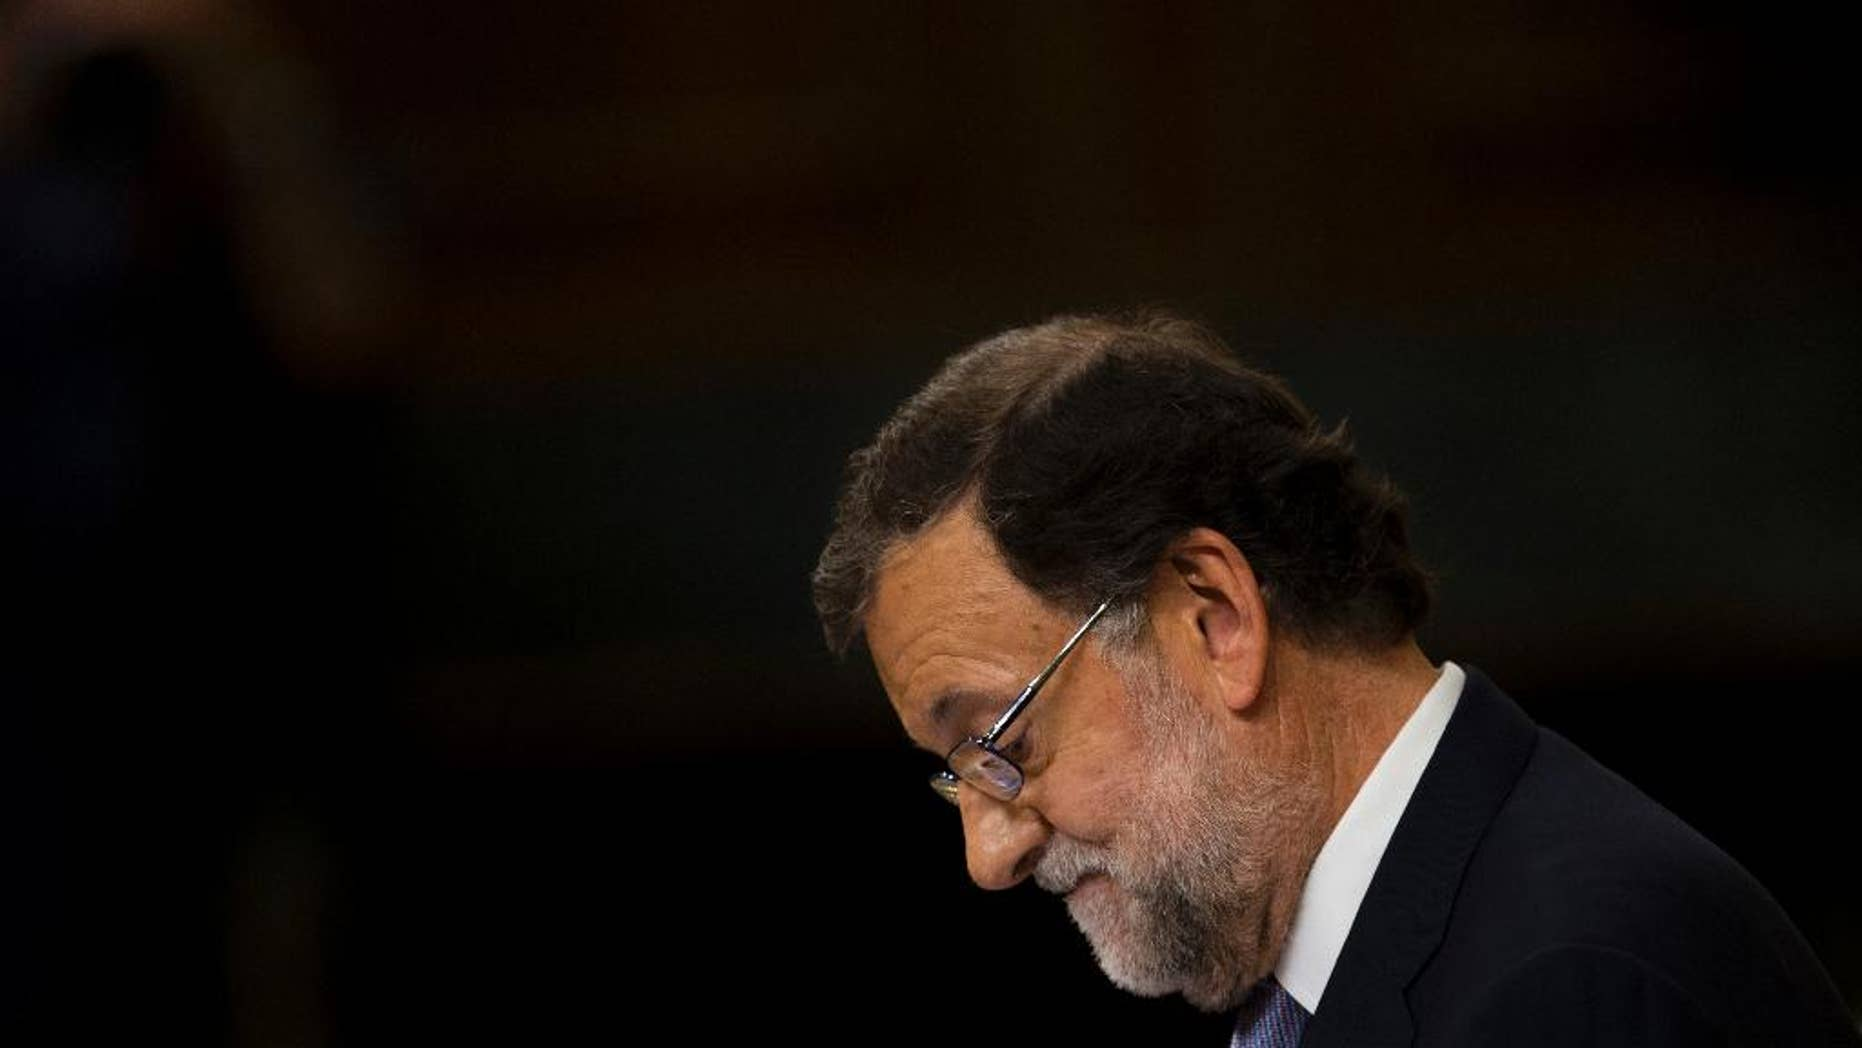 Spain's acting Prime Minister and Popular party leader Mariano Rajoy looks down as he addresses lawmakers during the second of the two day investiture debate, at the Spanish parliament in Madrid, Wednesday, Aug. 31, 2016. Rajoy lost the investiture voting on Wednesday but he has a second chance Friday when he only needs more votes in favor than against. (AP Photo/Francisco Seco)